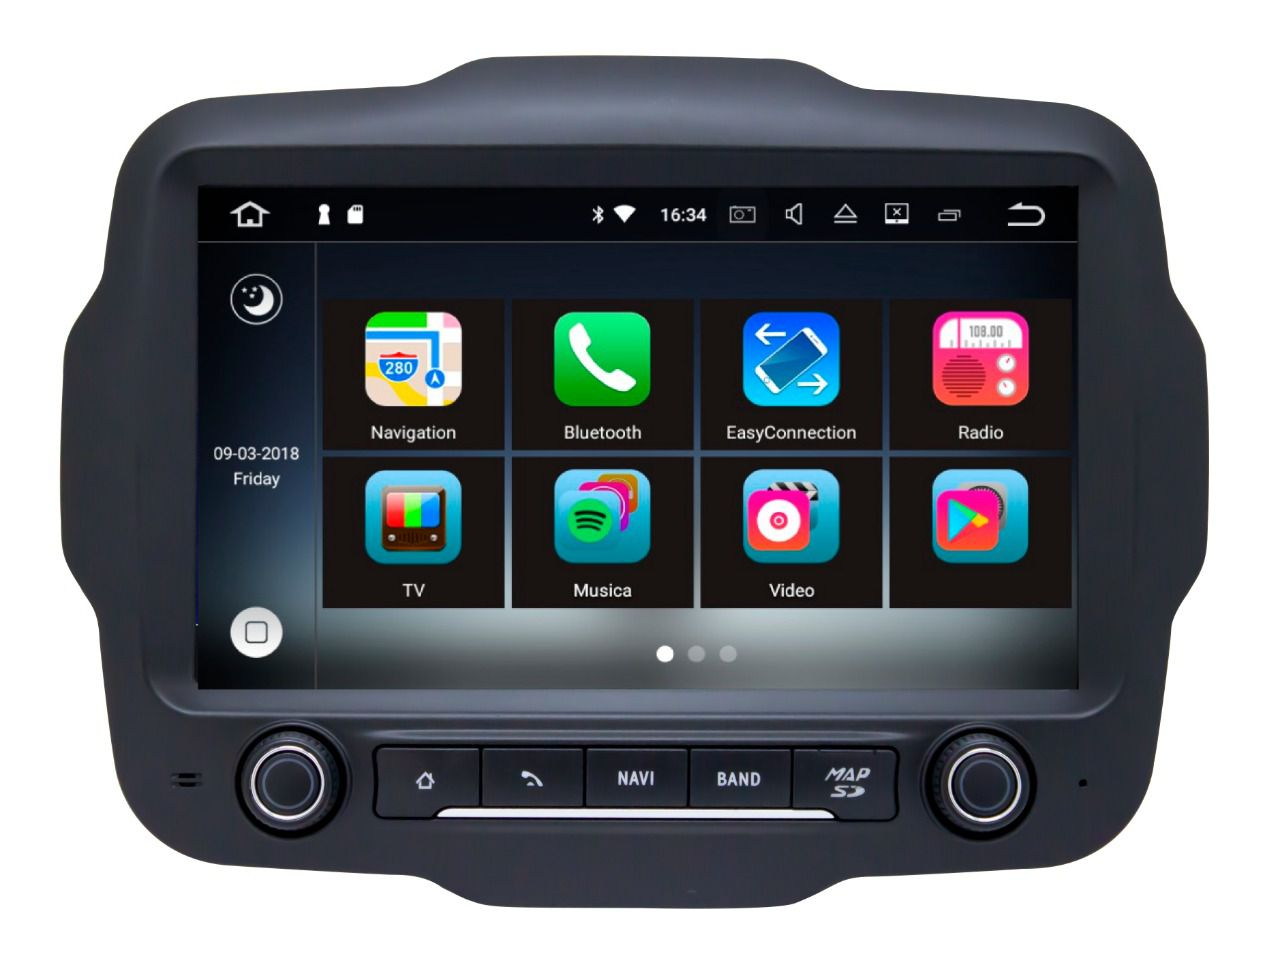 Central Multimidia Aikon  Jeep Renegade PCD - XDROID 8.0 Tela 9 Polegadas - GPS Mapa Bluetooth MP3 USB Ipod SD TV Digital FULLHD Card Câmera de Ré - Sistema Android 6.0